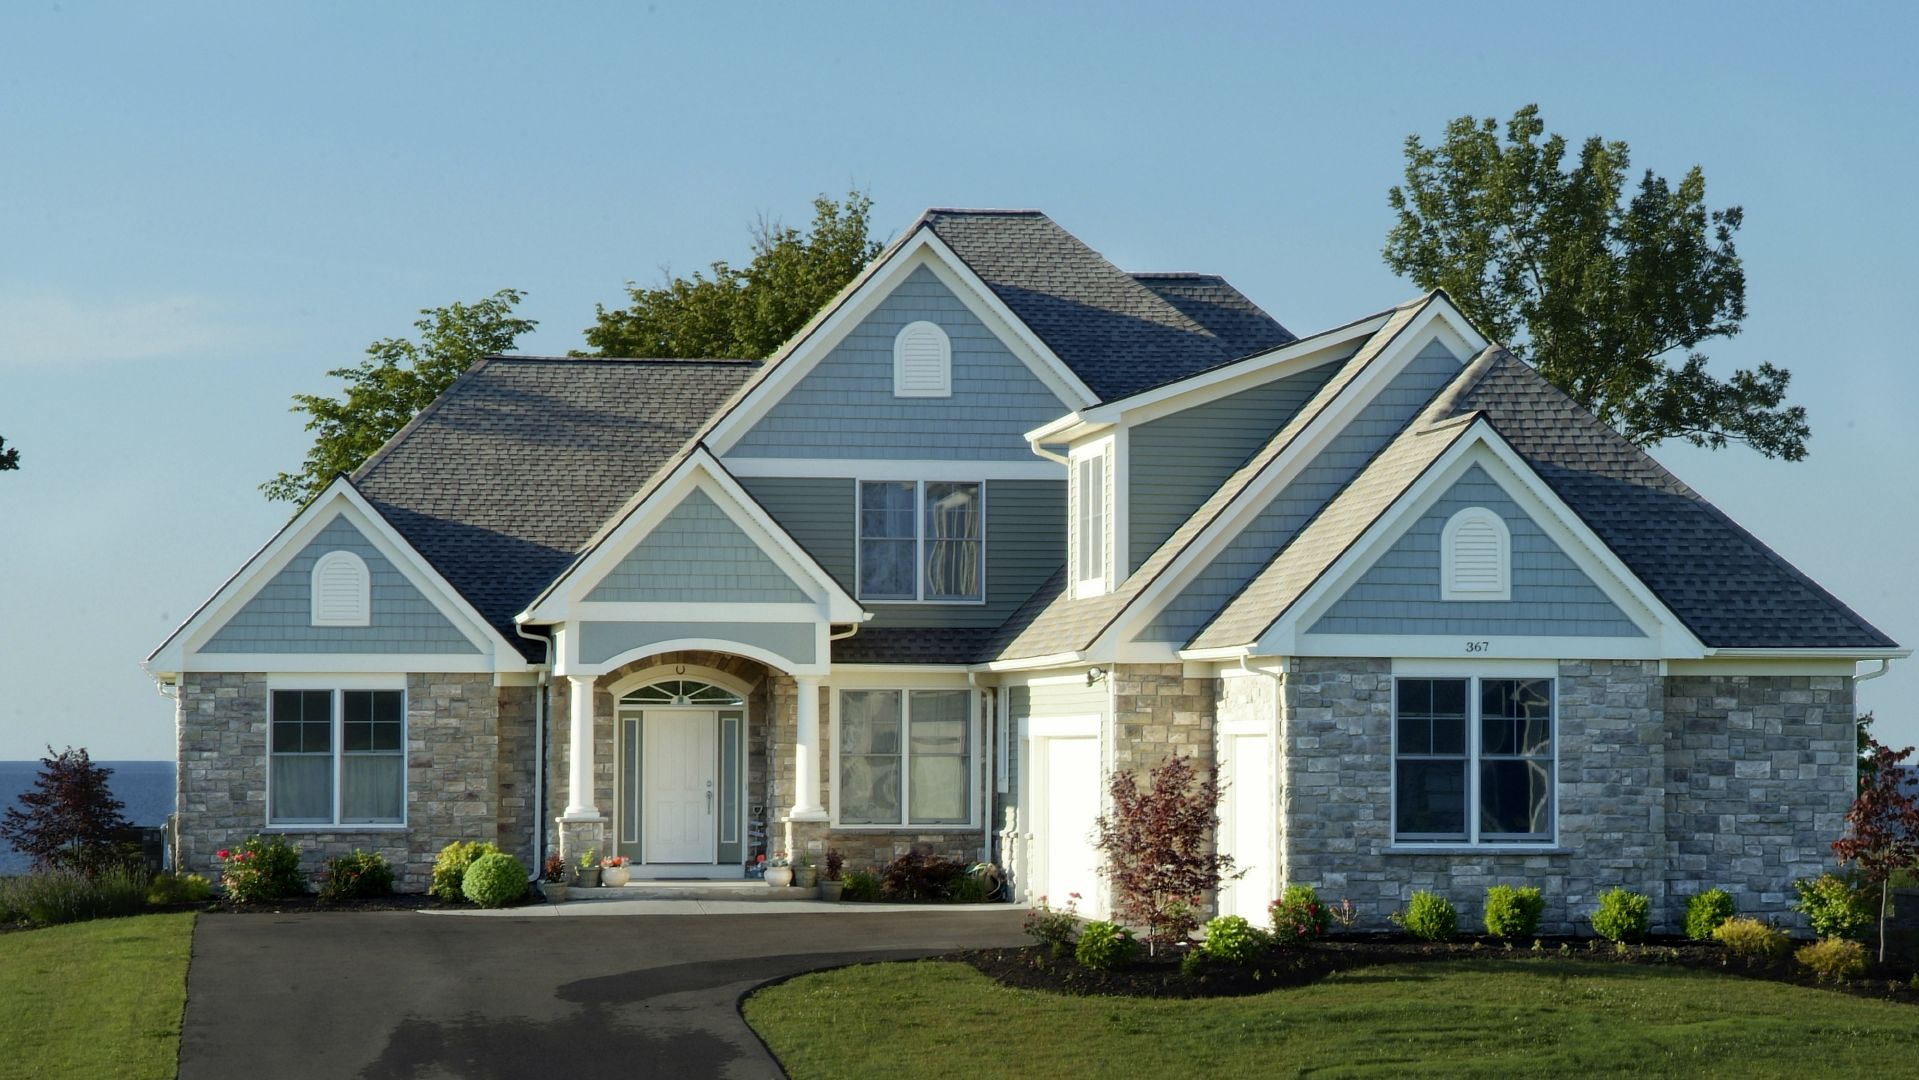 home plans that fit your life call carini today for a free consultation - Architect Design Home